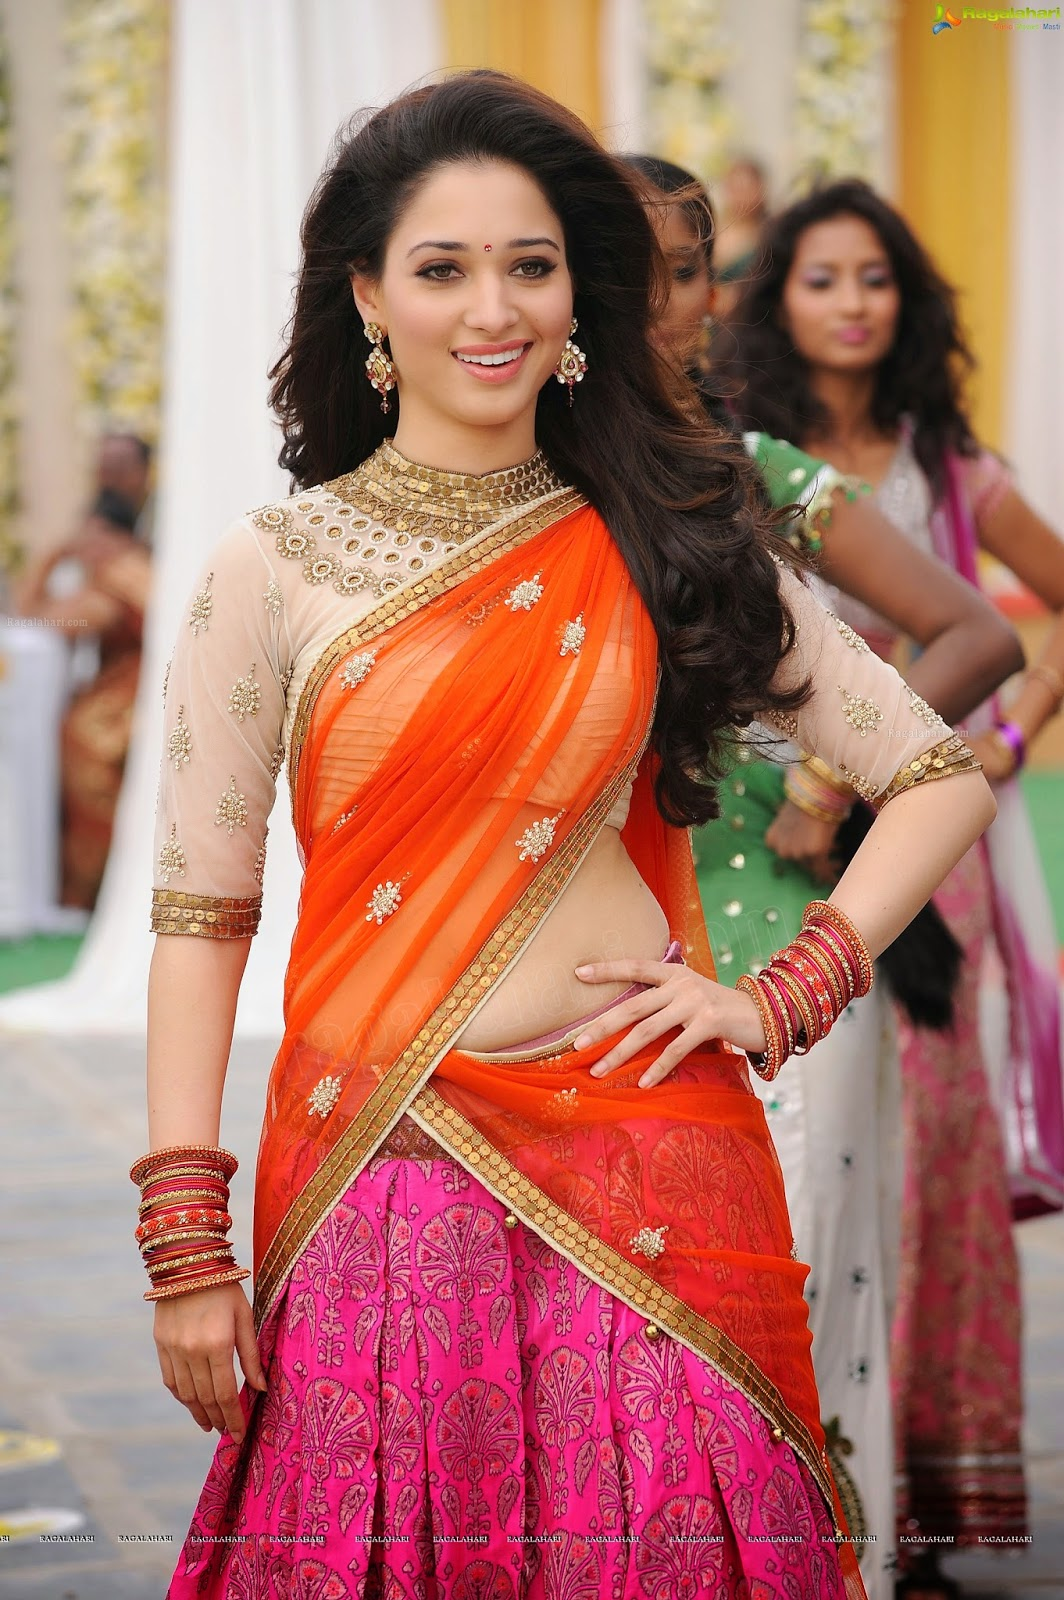 Tamanna Saree Gulte: OnLy AcTrEsS: Tamanna Navel Show Half Saree Photos At